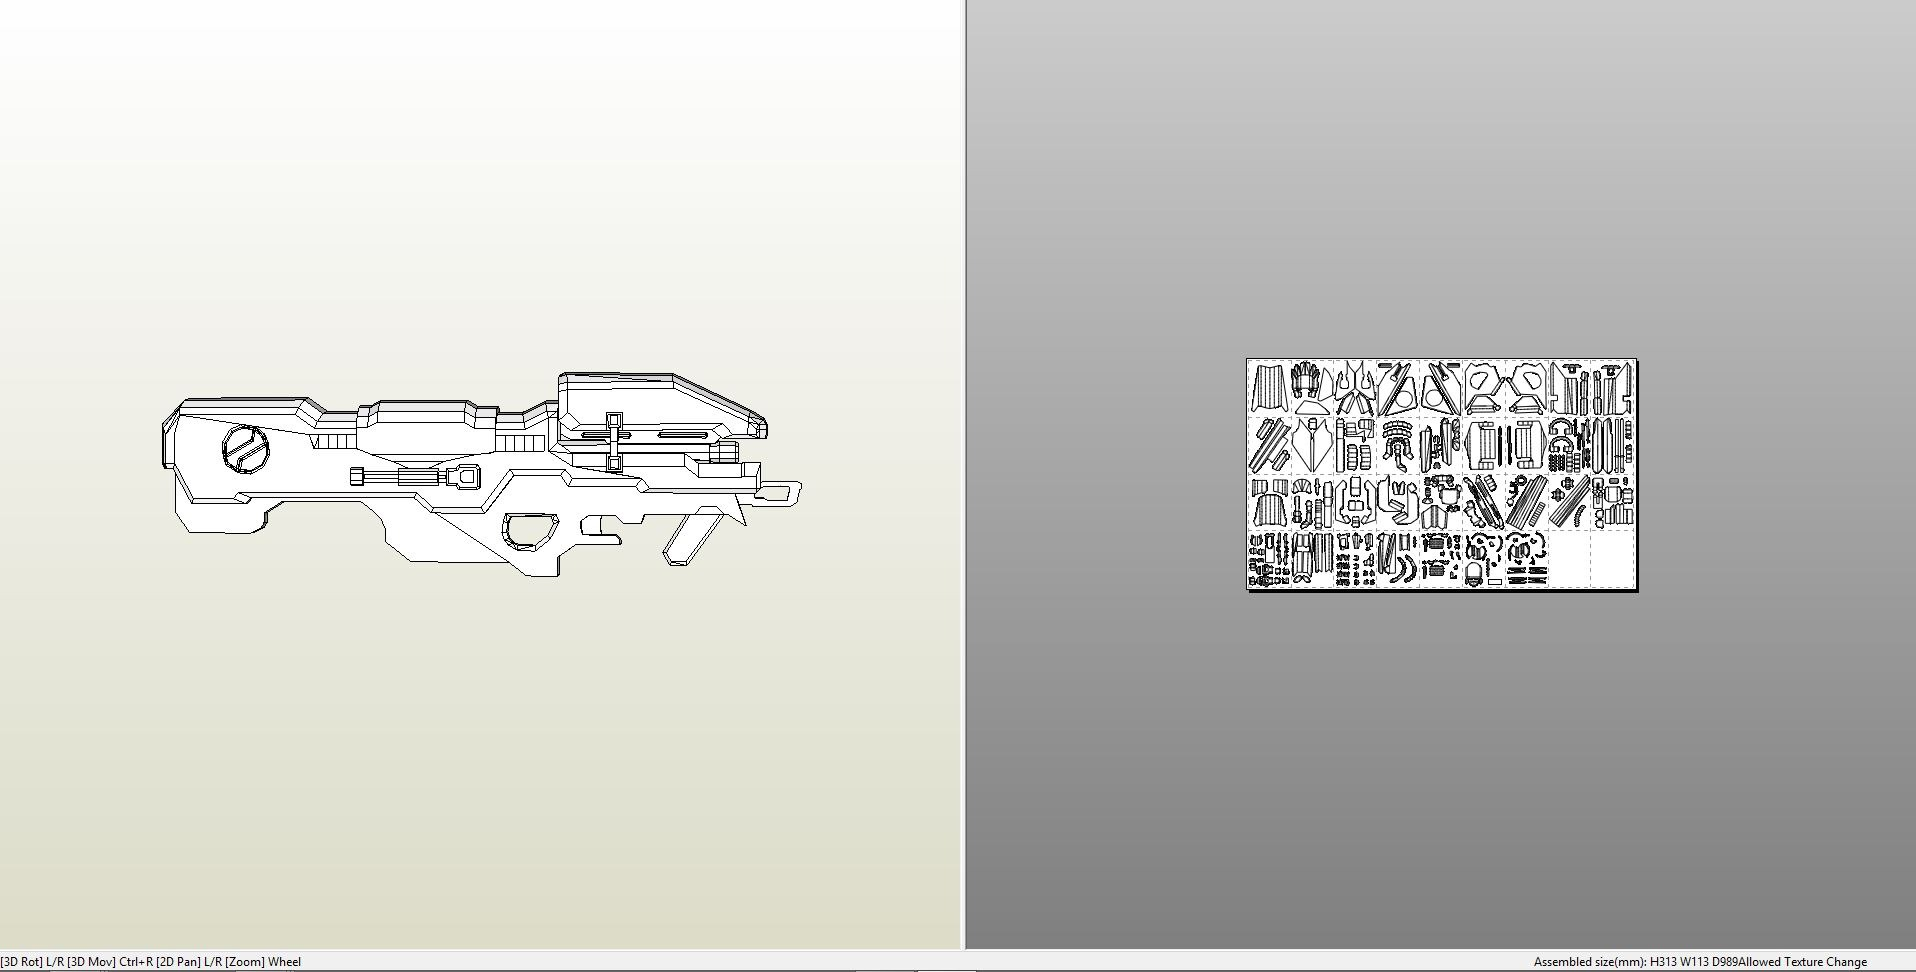 Papercraft .pdo file template for Halo 4 - Spartan Laser.